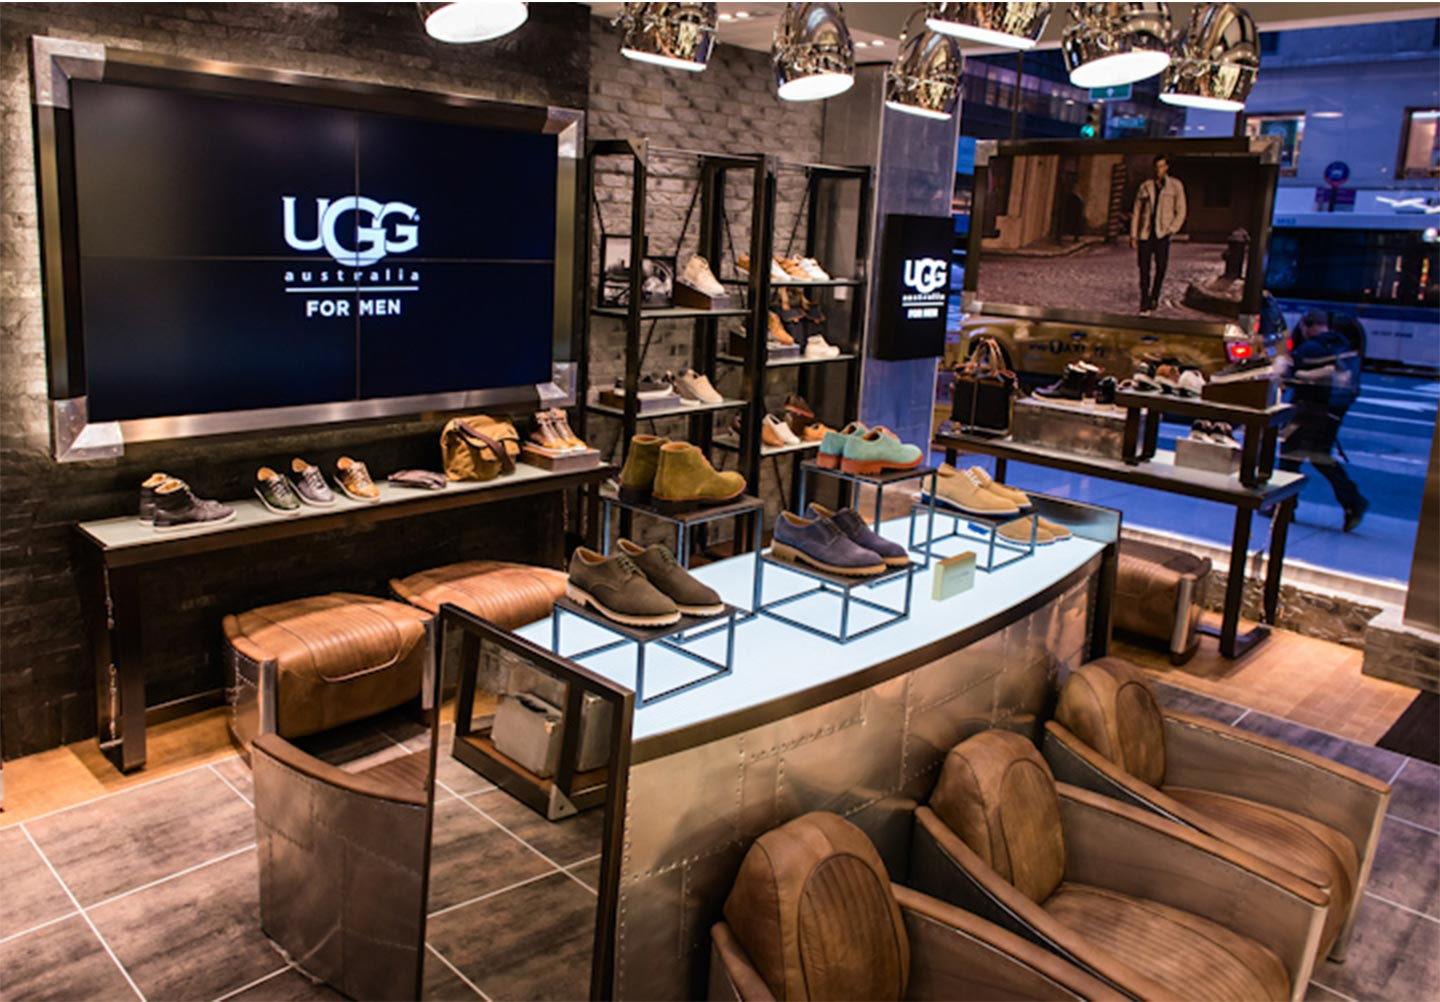 interior of Ugg retail store